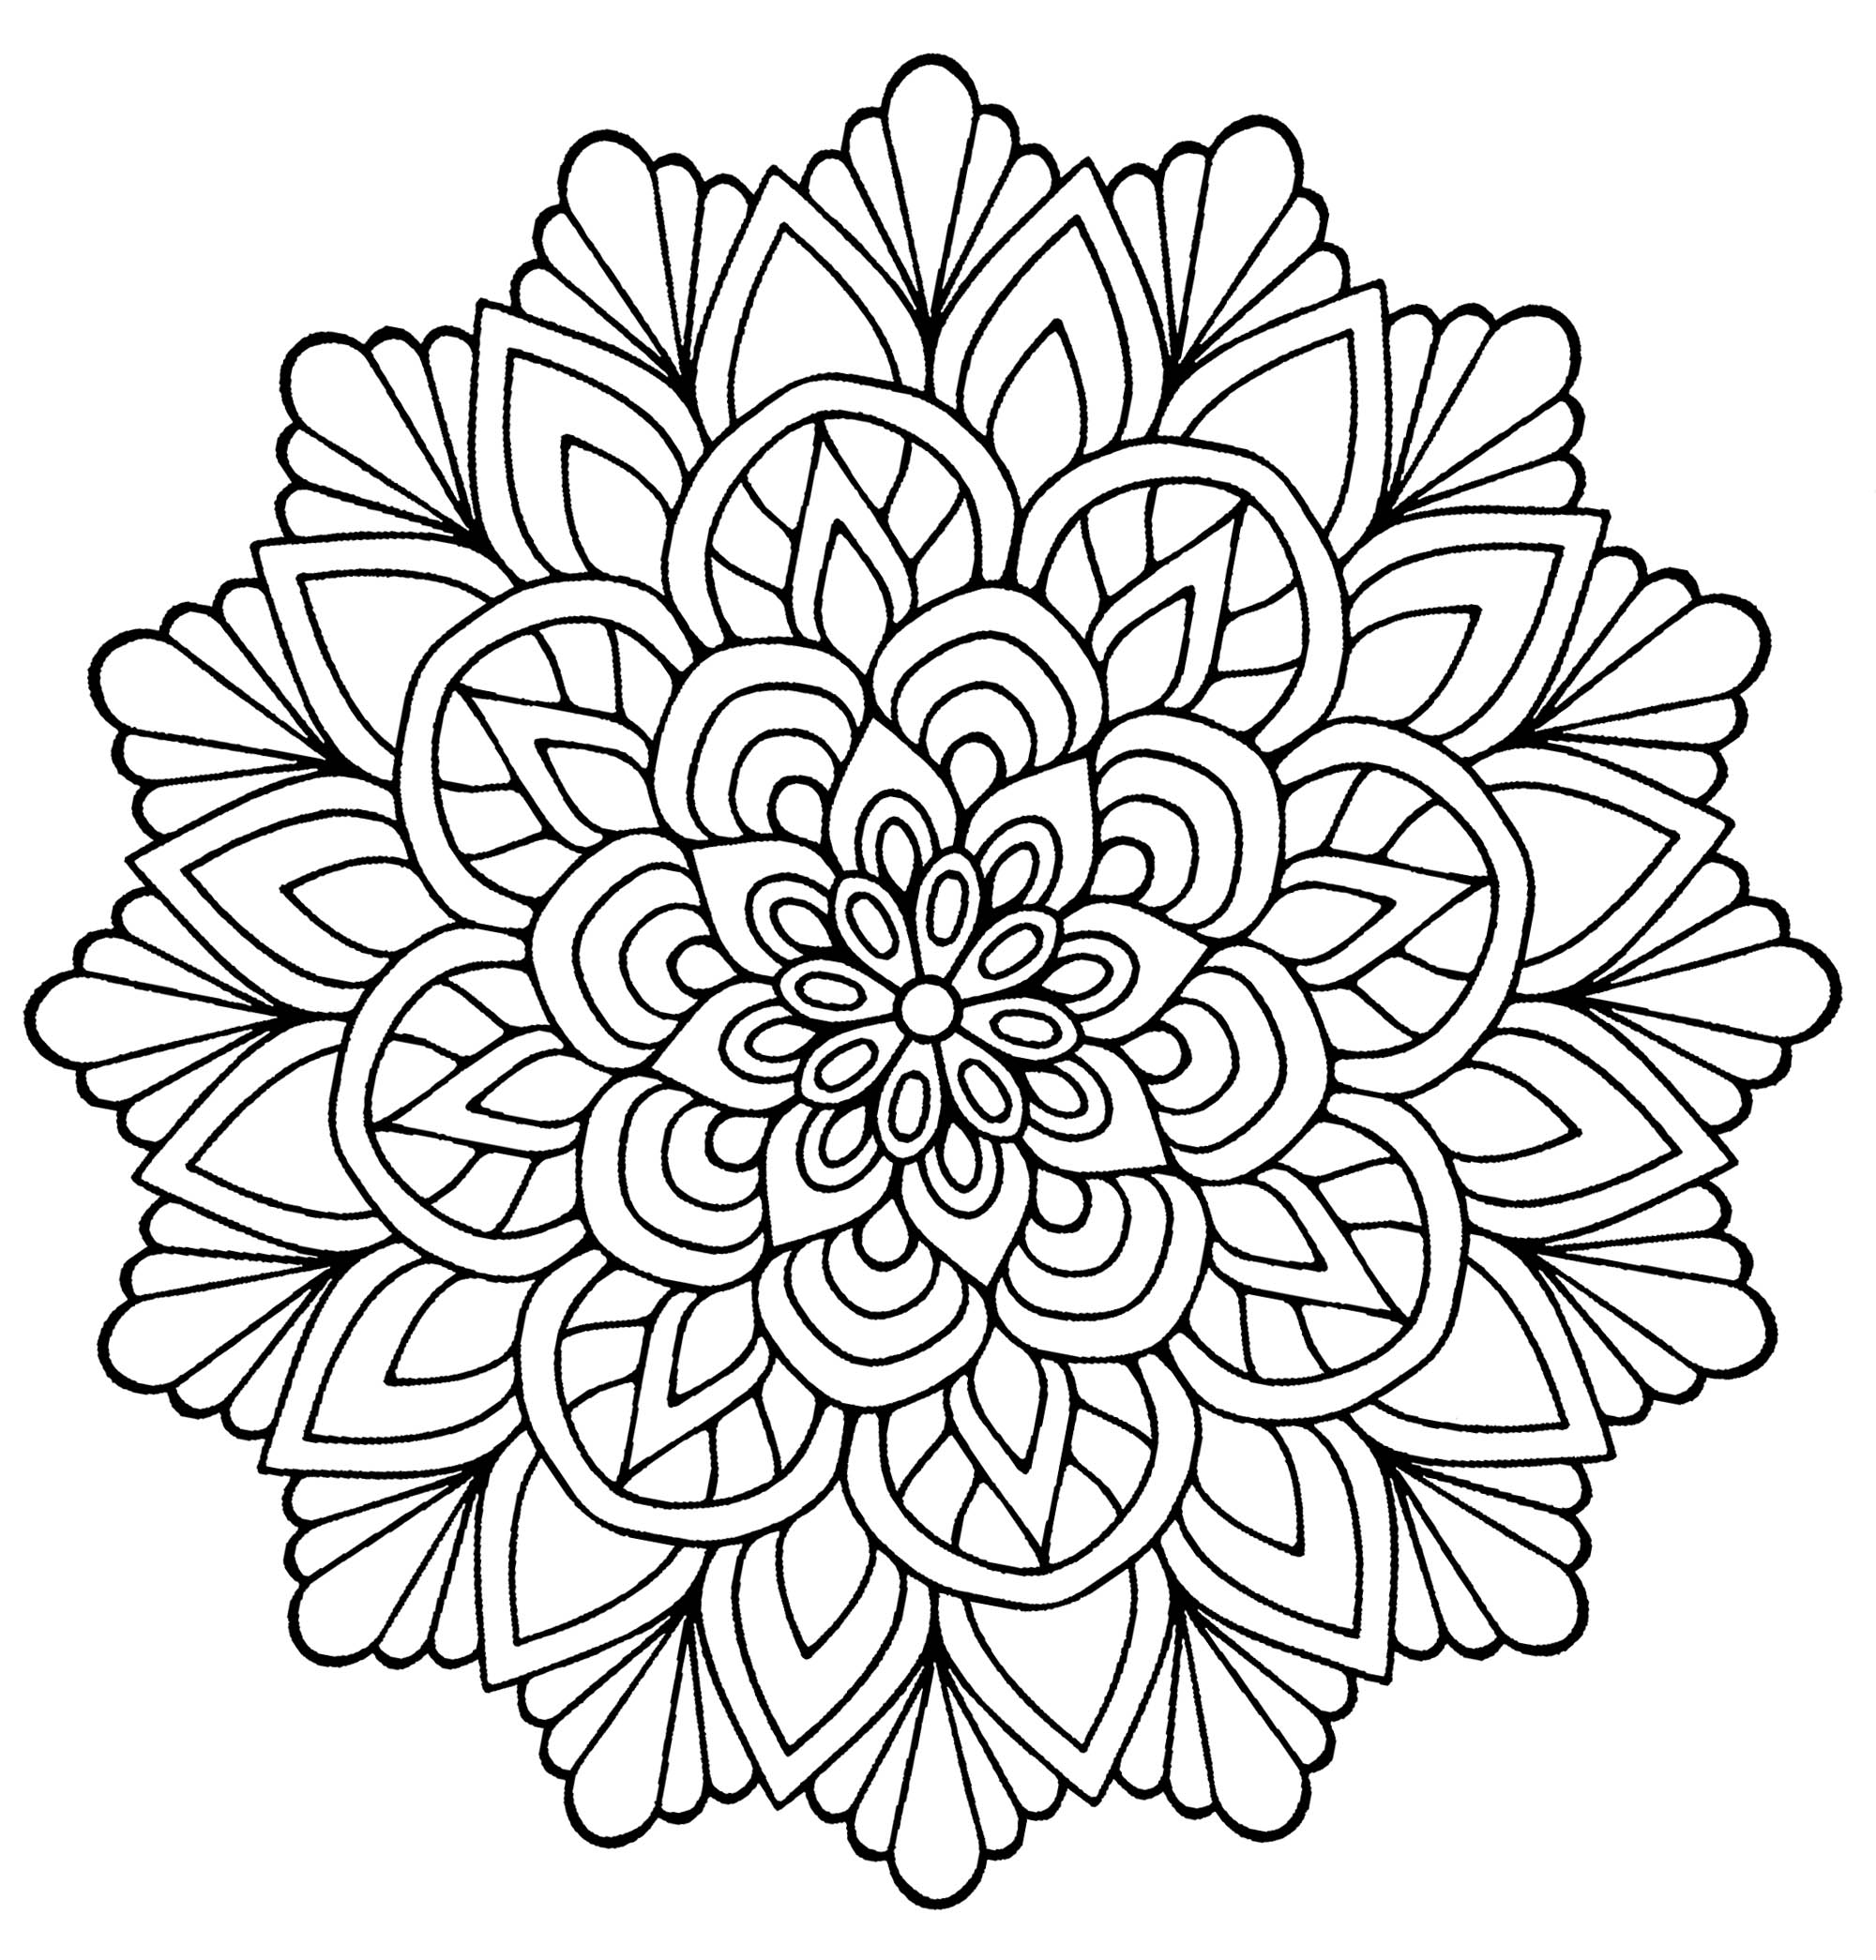 easy coloring pages of flowers easy flower with leaves simple mandalas 100 mandalas of coloring flowers easy pages